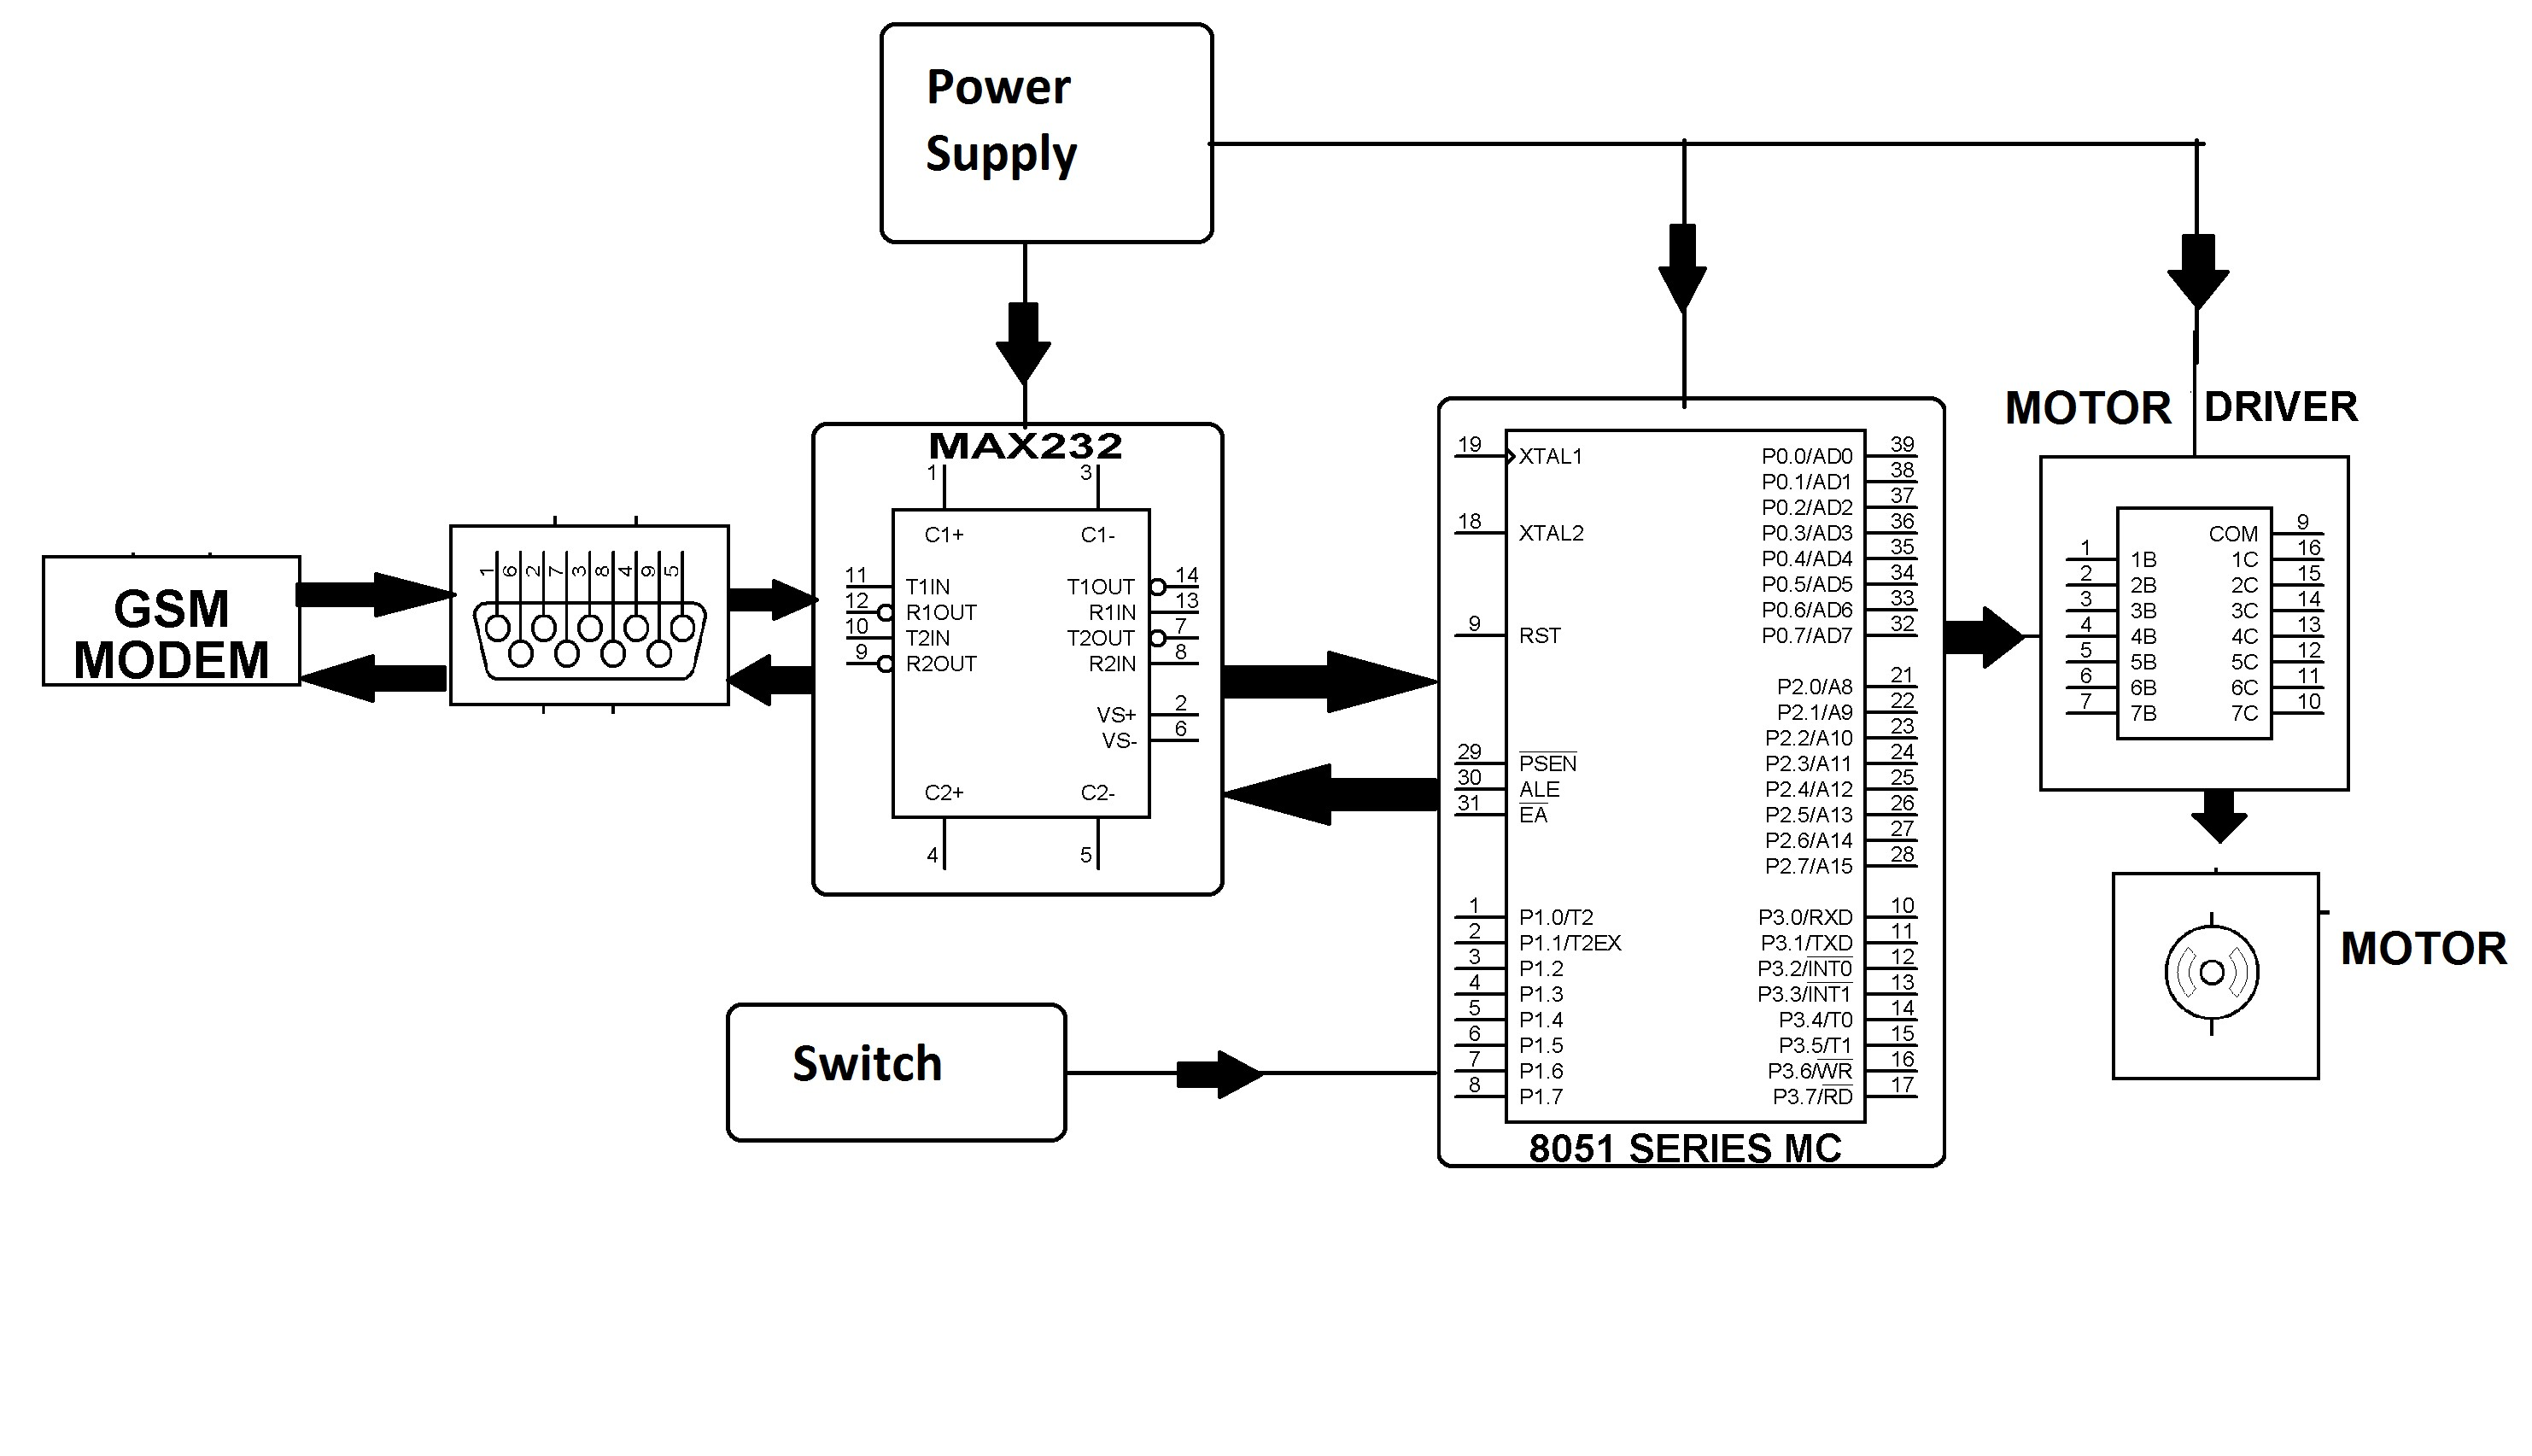 Diagram for Car Engine Vehicle theft Detection Notification and Remote Engine Locking Of Diagram for Car Engine